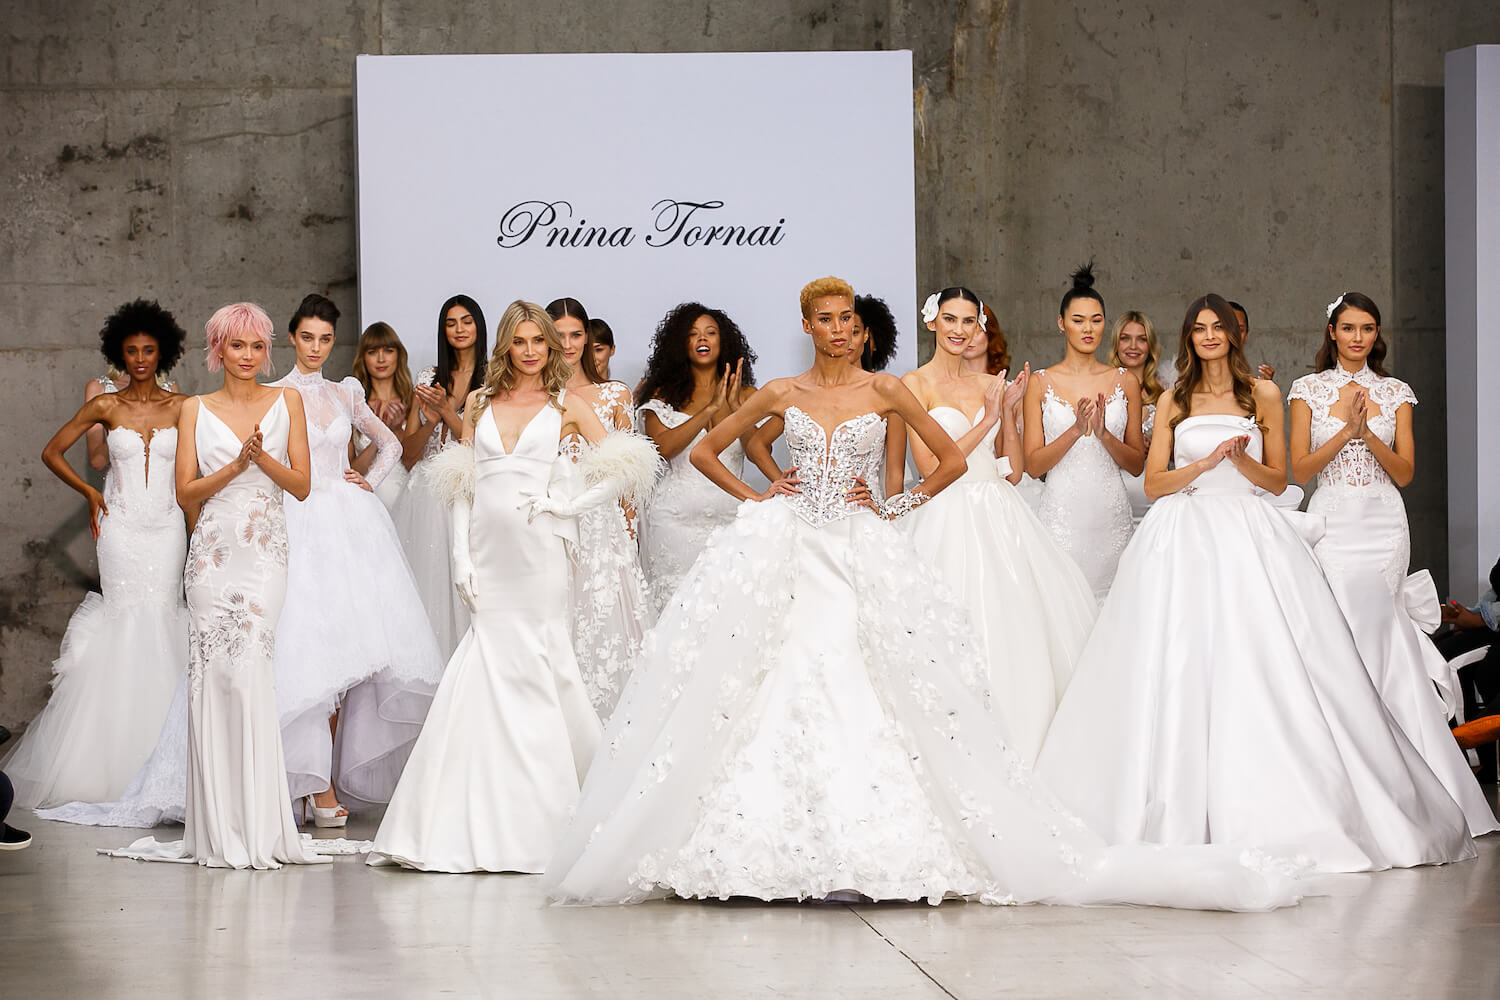 Pnina Tornai Real Wedding Dress Collection From Nybfw 2020 Perfete